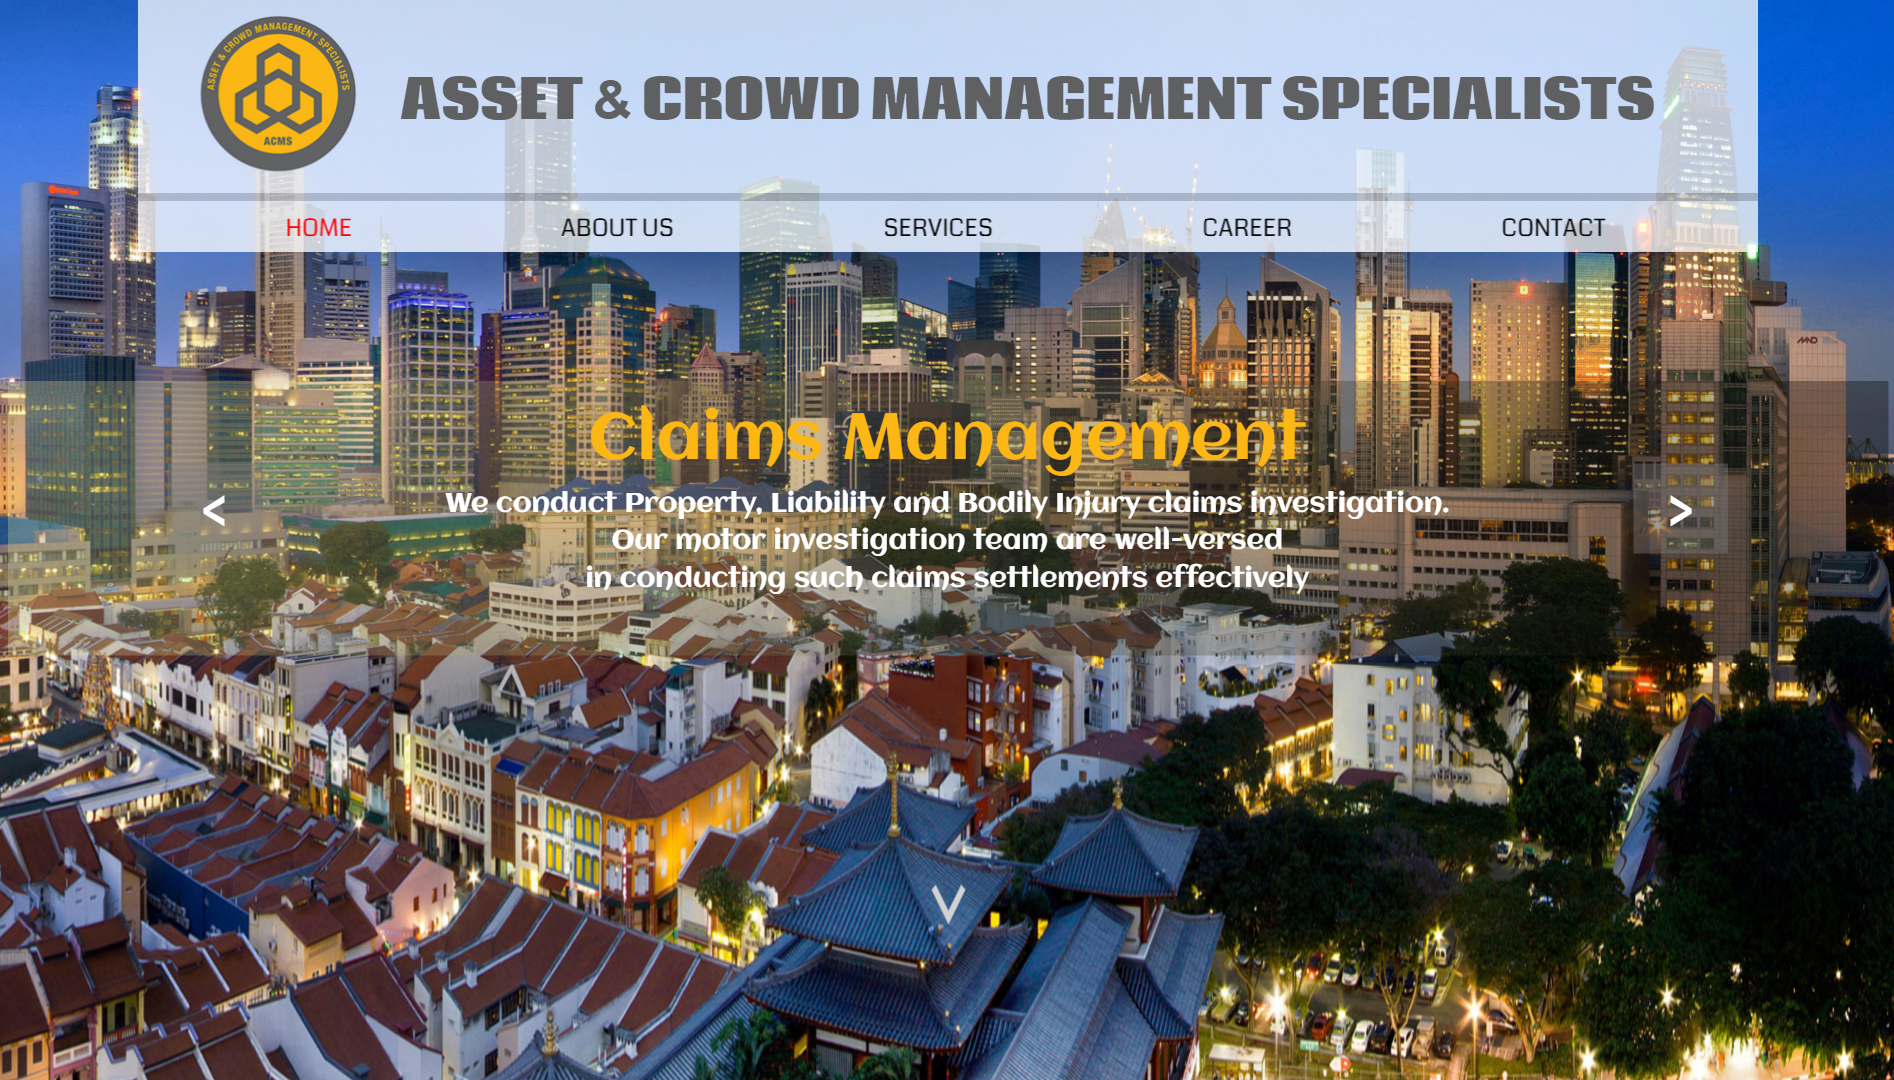 Asset & Crowd Management Specialists